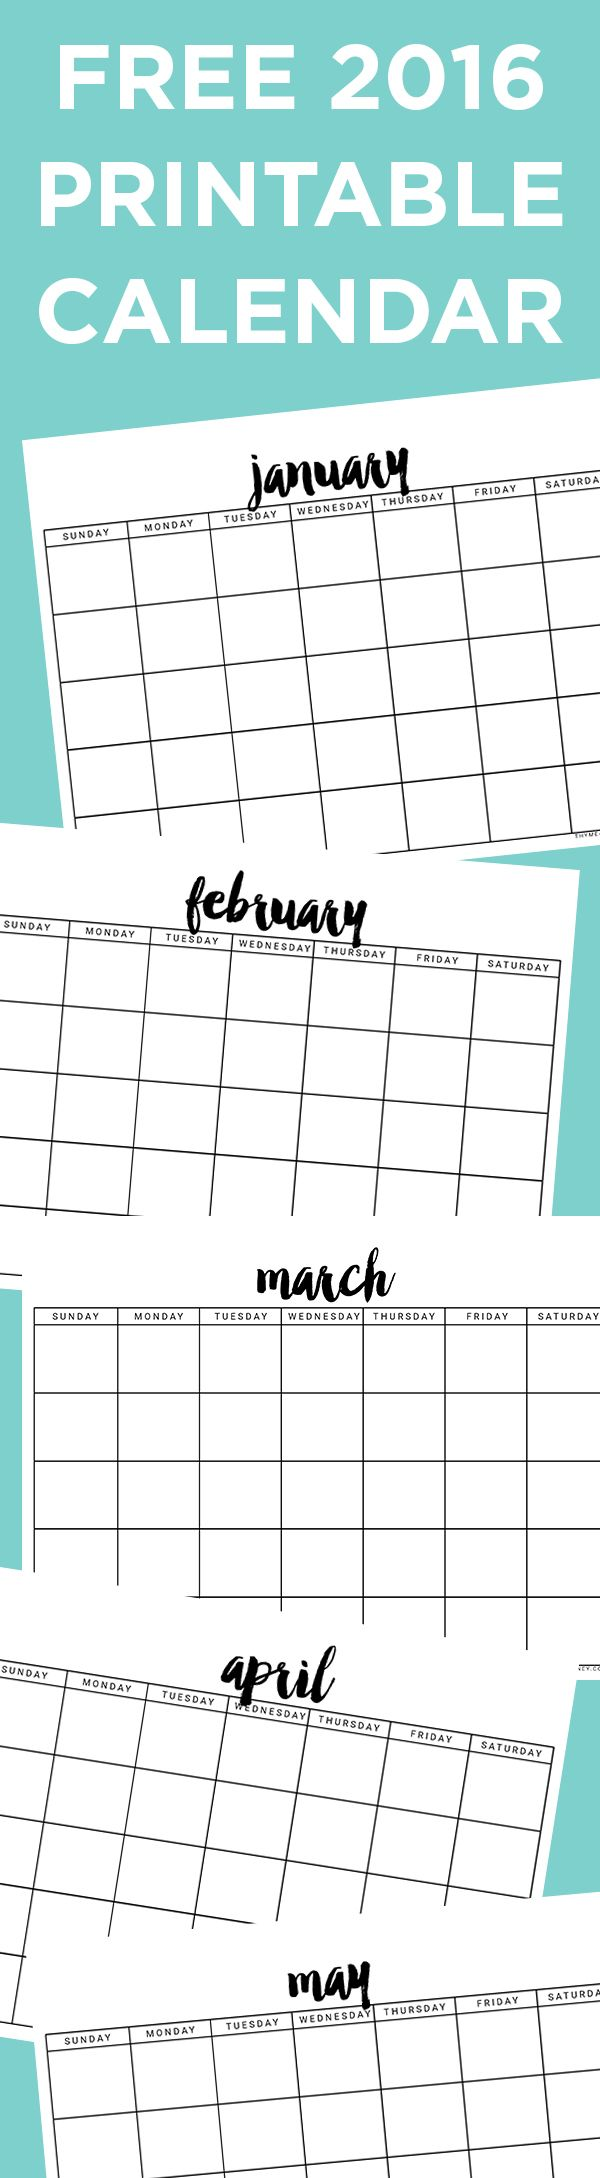 Free Printable 2016 Calendar | Thyme is Honey